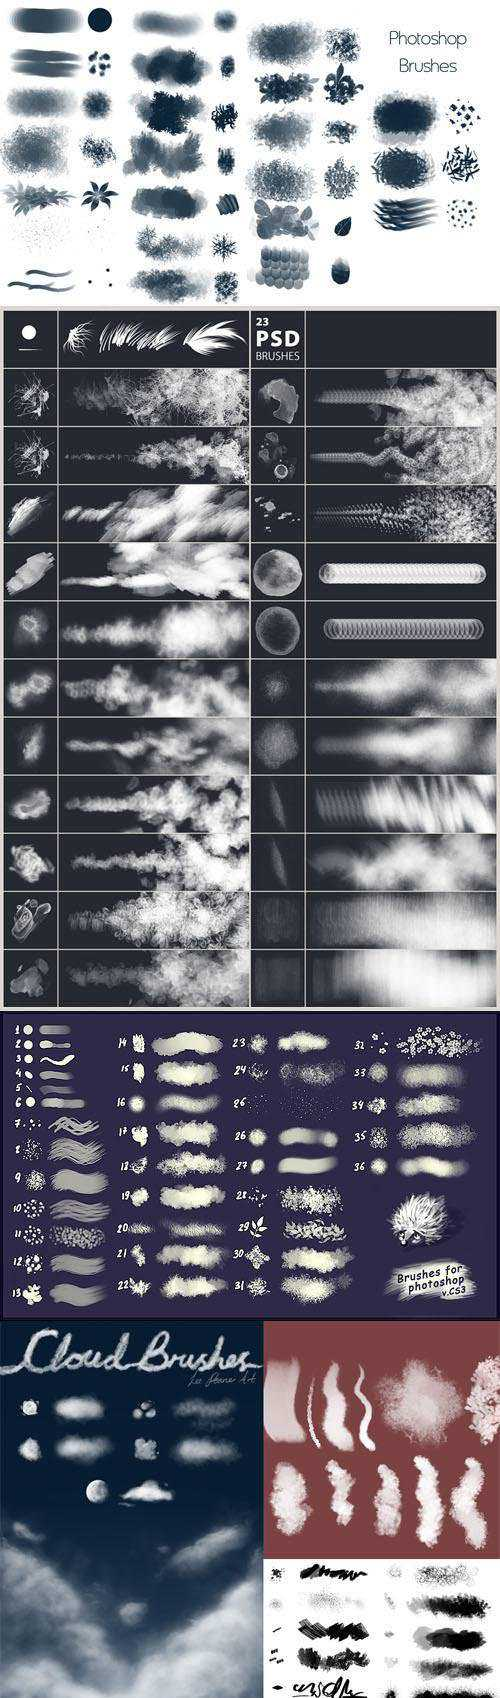 100+ Photoshop Brushes Collection